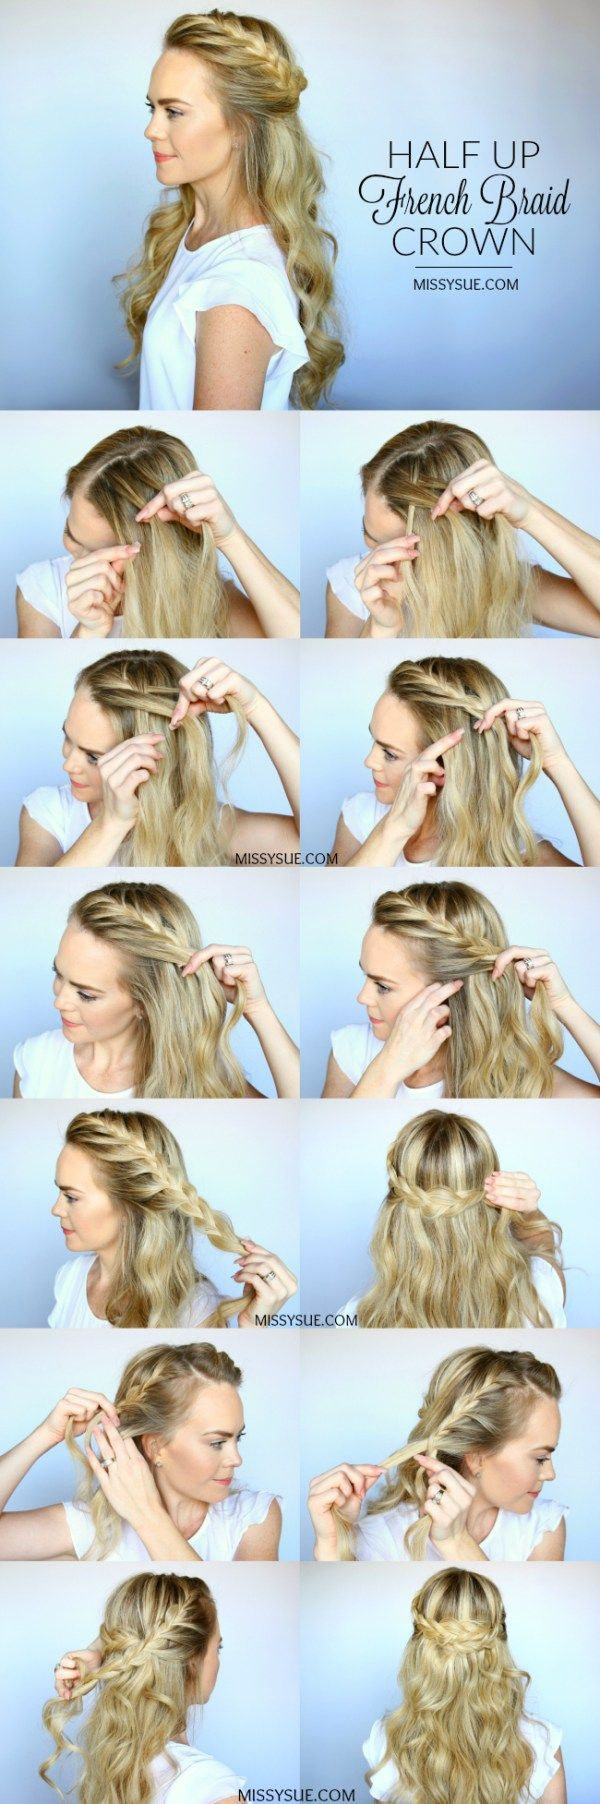 half-up-frenc-braid-crown-hair-tutorial #hairtutorials